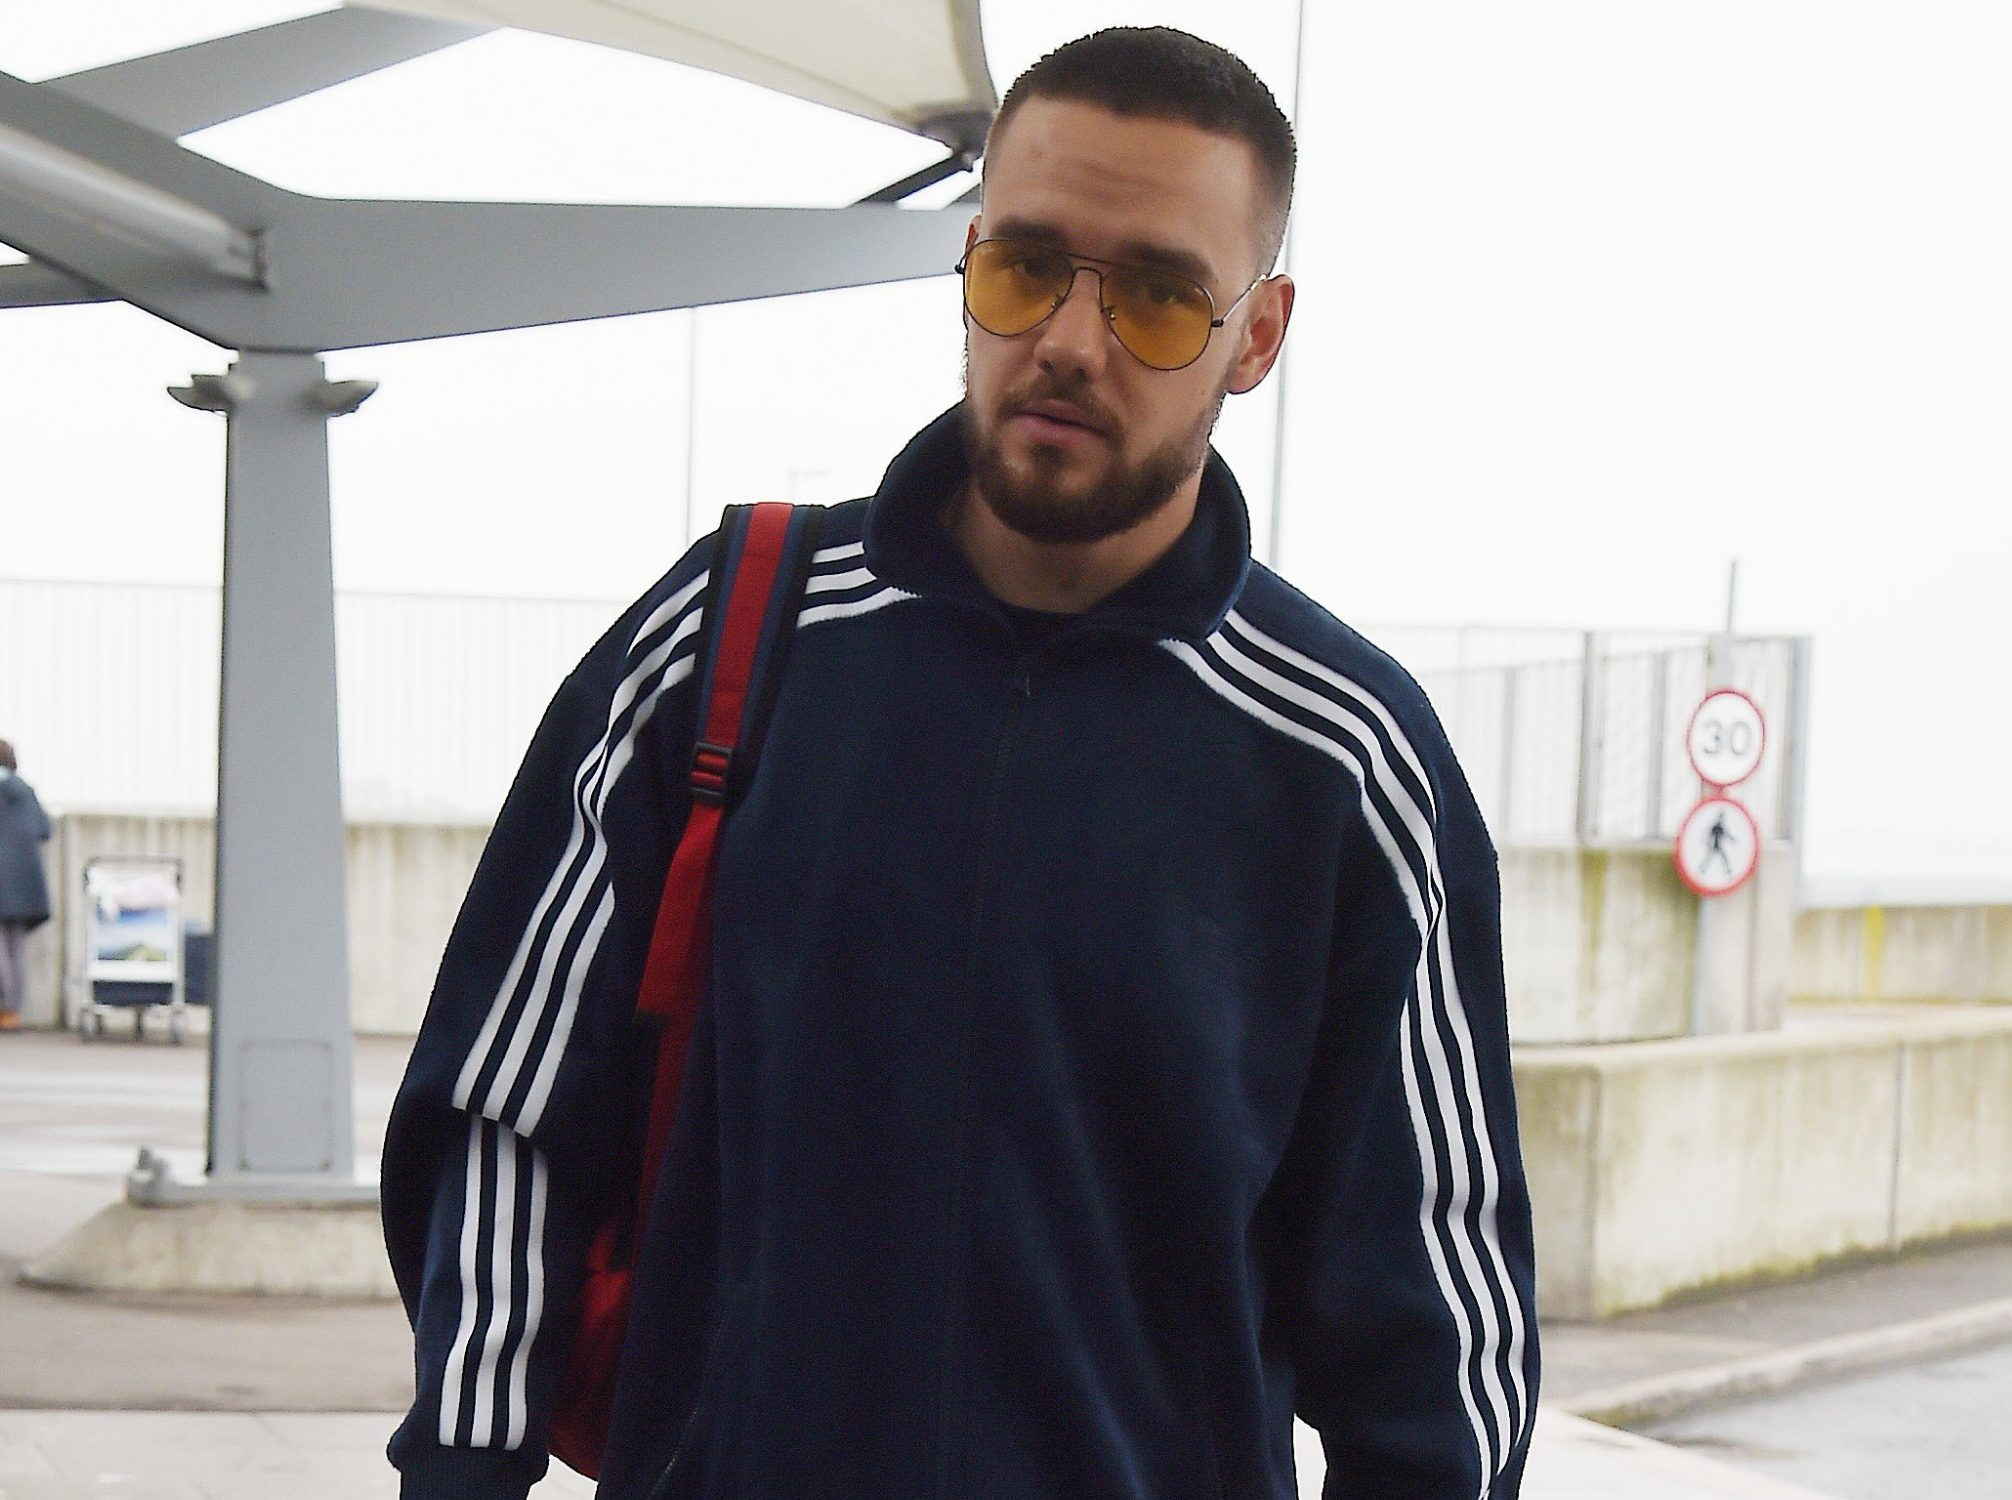 April 11, 2018 Liam Payne seen arriving at Heathrow in London Non Exclusive Worldwide Rights Pictures by : Flynet Pictures ? 2018 Tel : +44 (0)20 3551 5049 Email : info@flynetpictures.co.uk